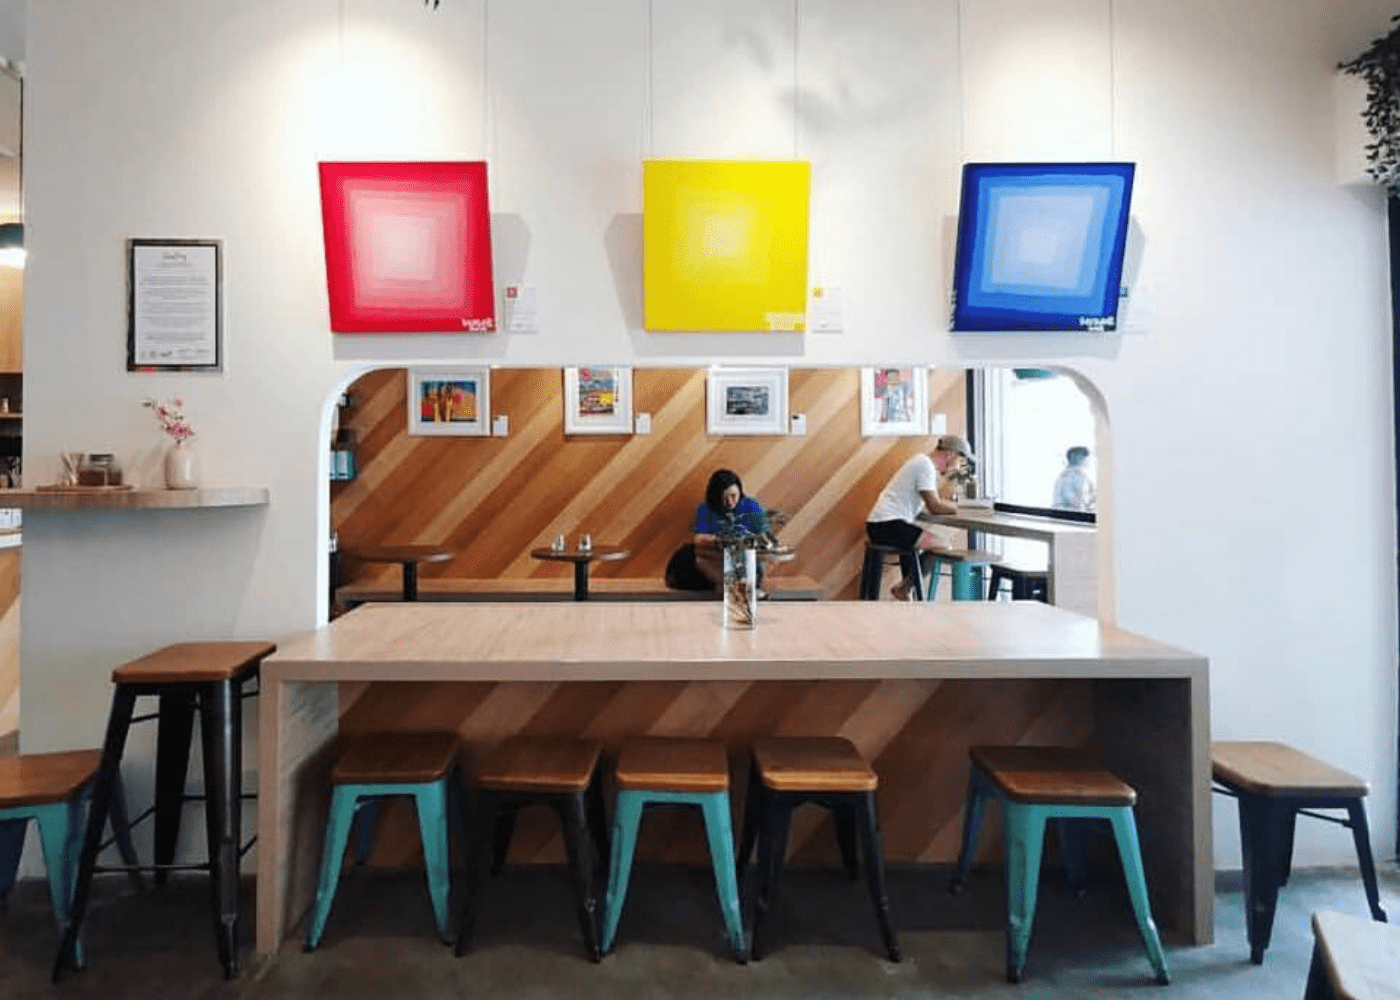 Percolate | Bedok | Cool cafes in Singapore